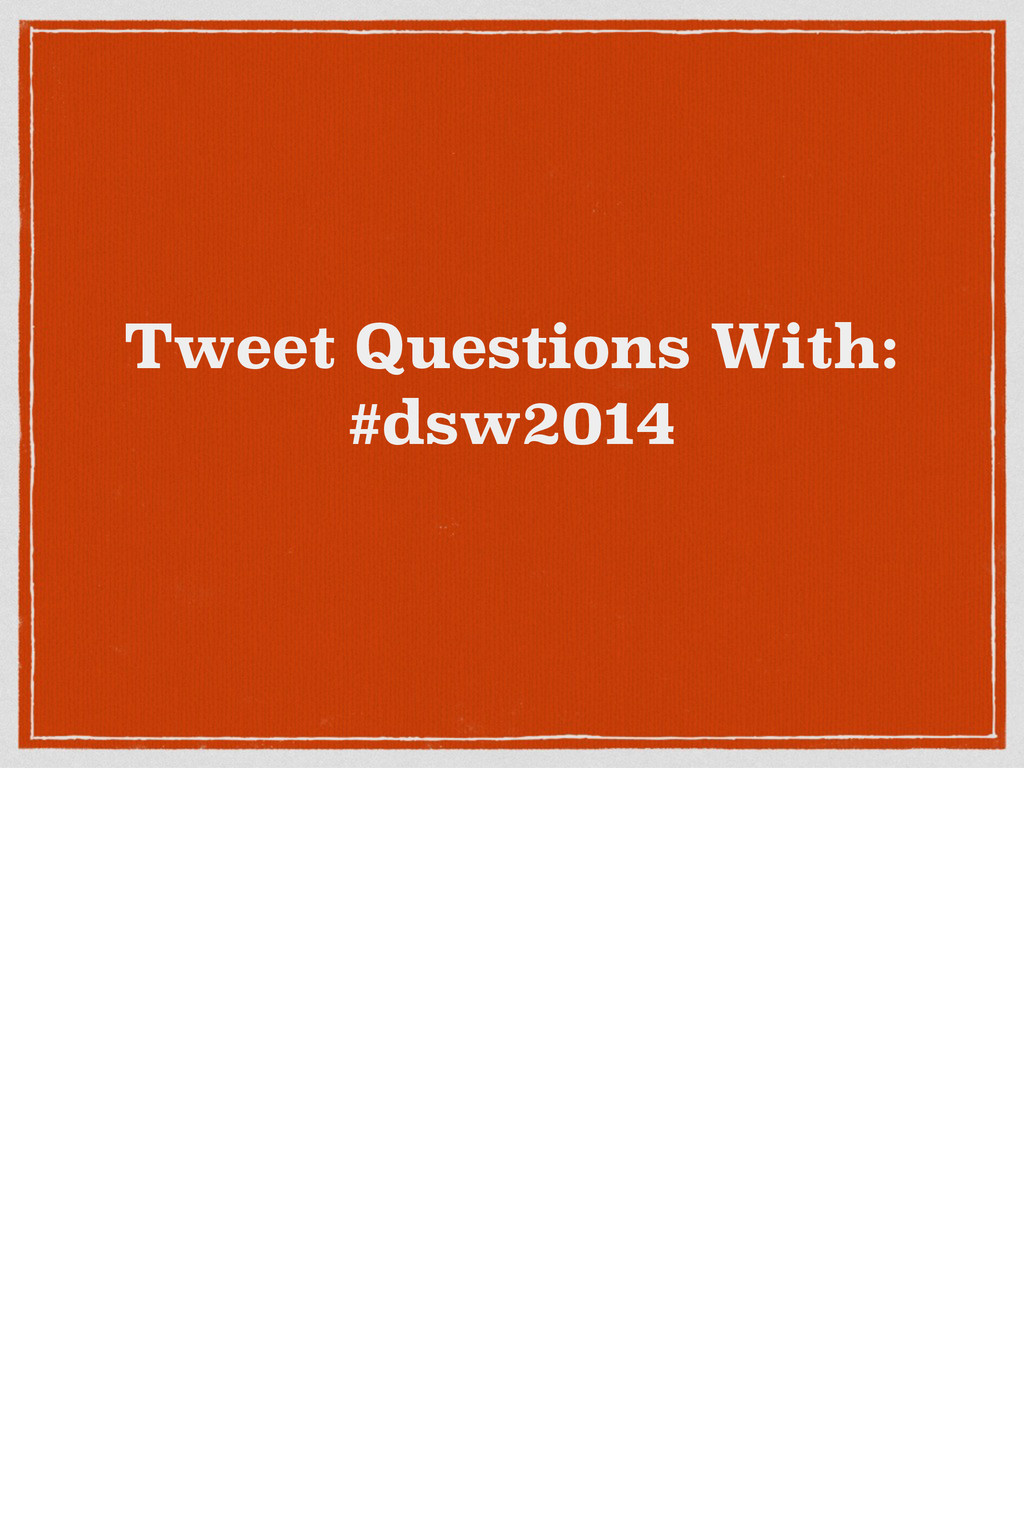 Tweet Questions With: #dsw2014